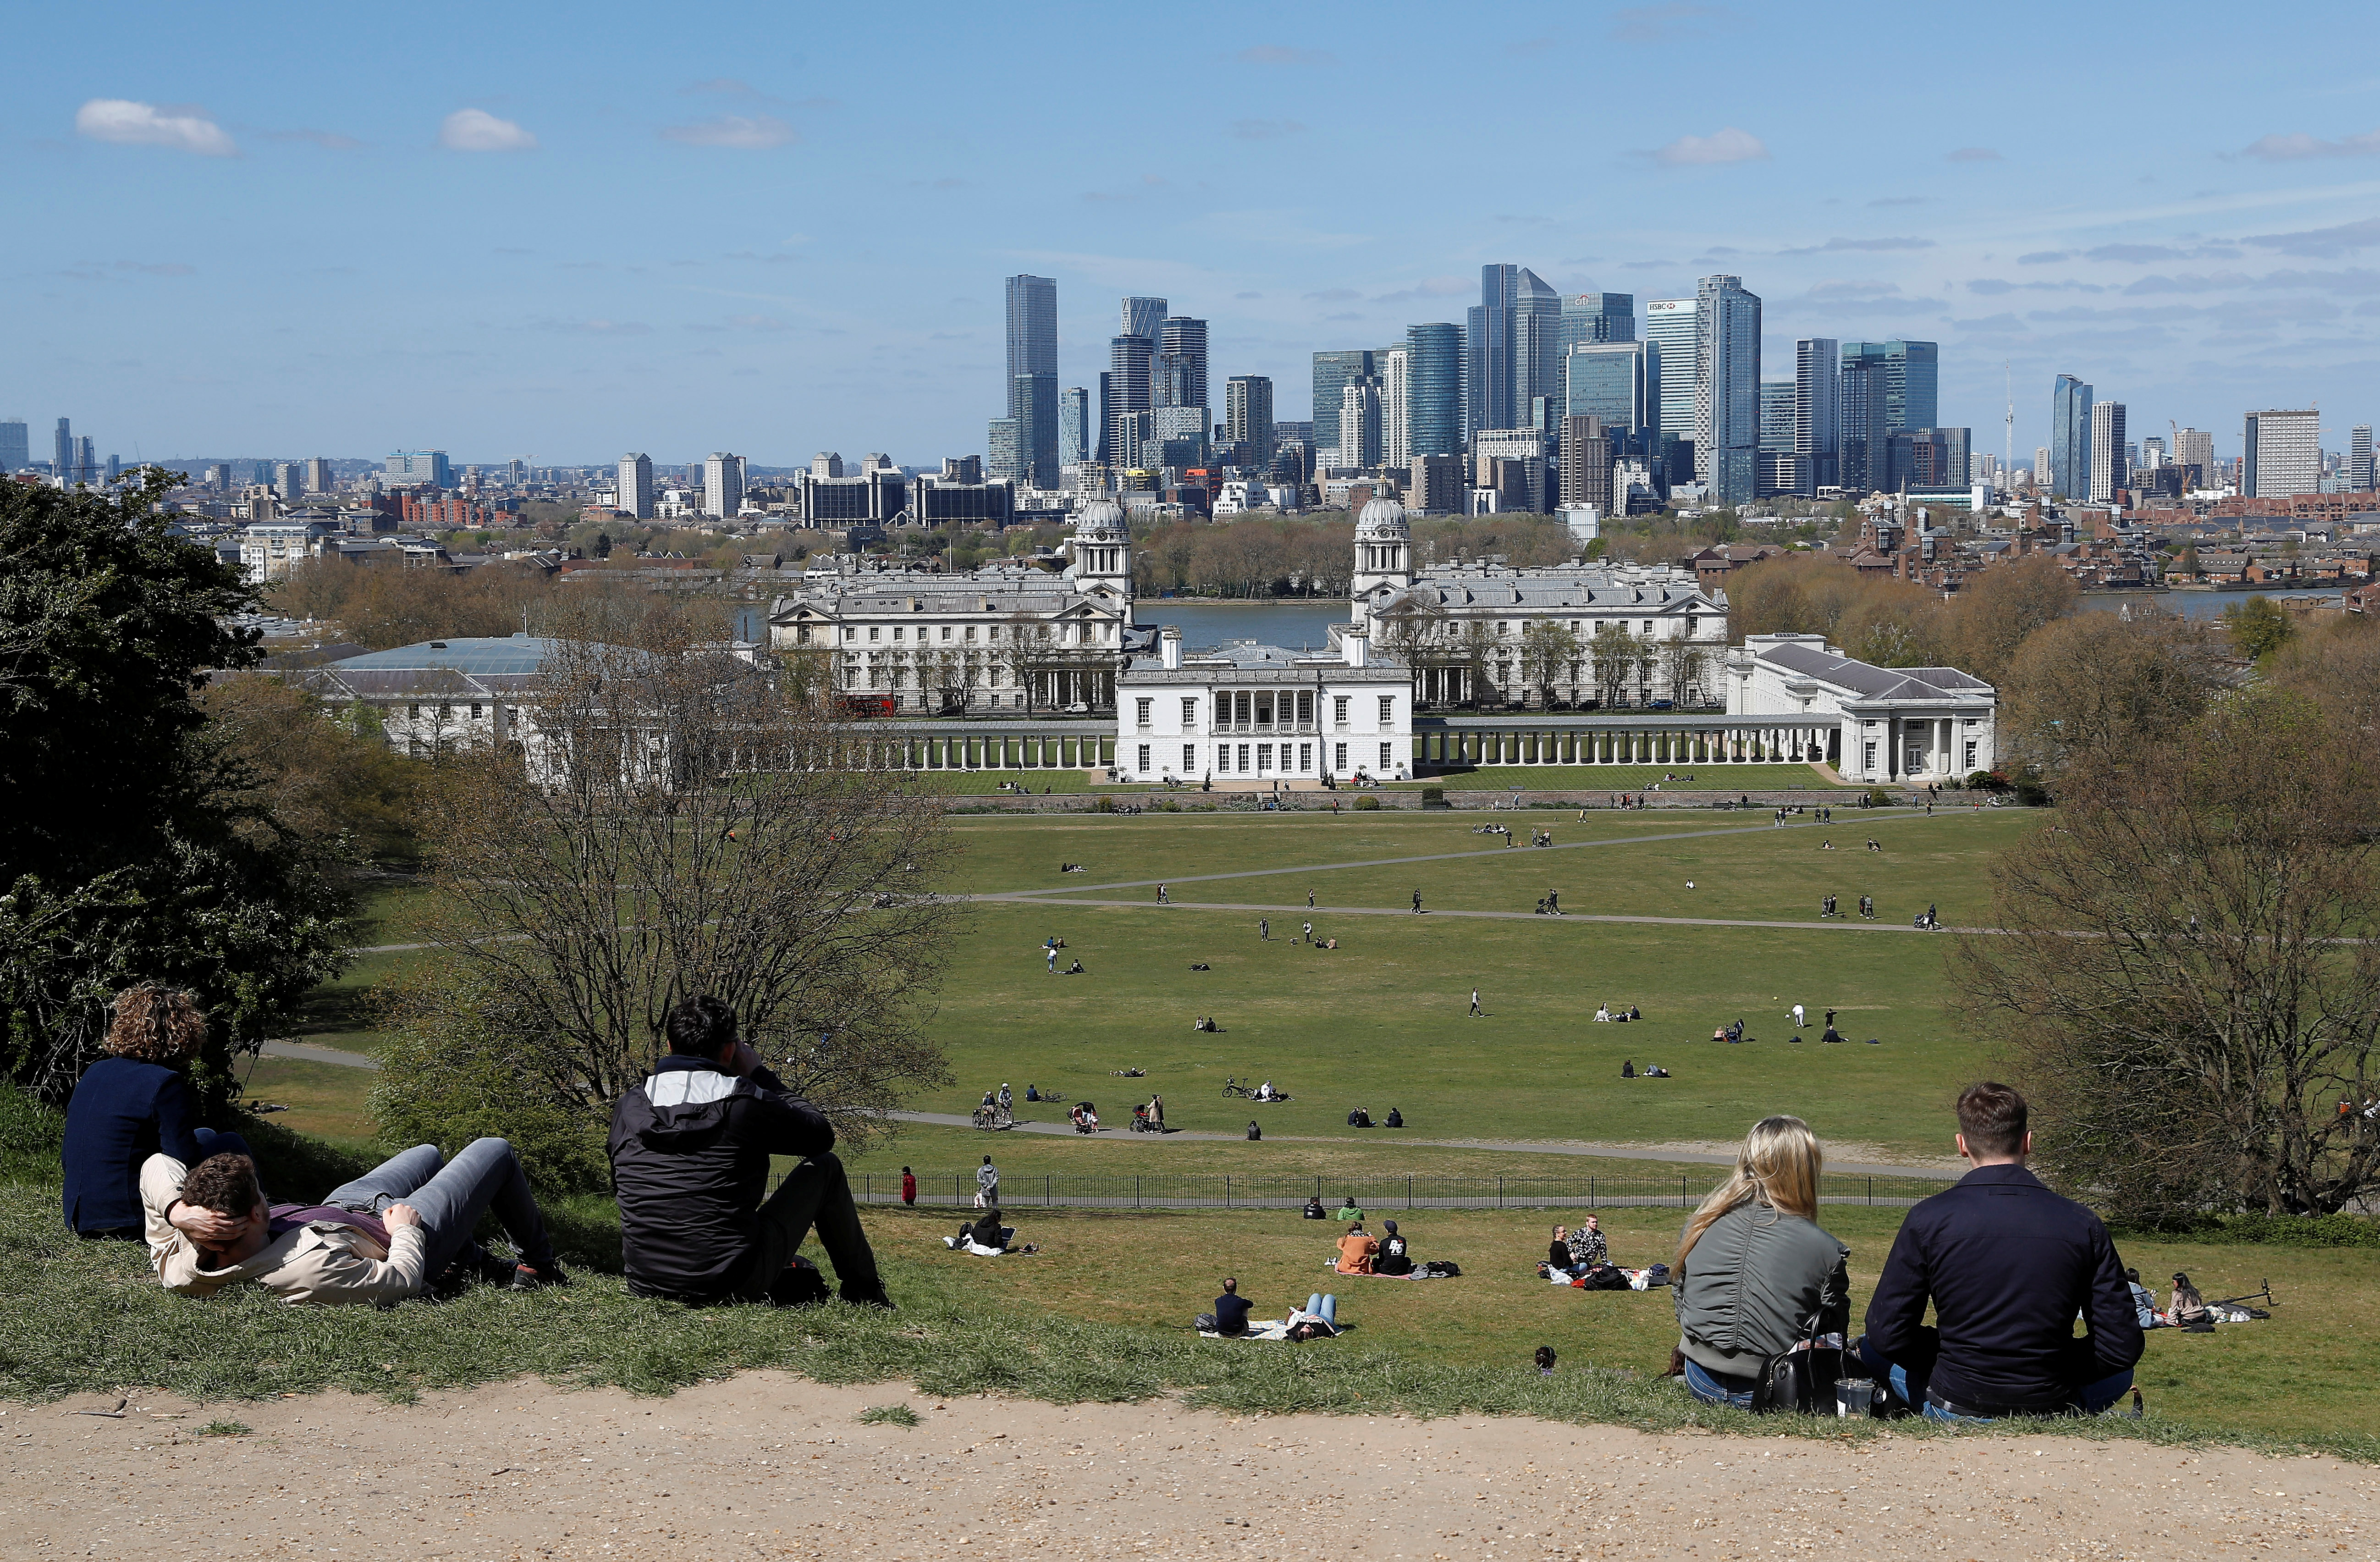 Visitors to Greenwich Park sit and look towards Canary Wharf financial district as lockdown restrictions are eased amidst the spread of the coronavirus disease (COVID-19) pandemic in London, Britain, April 25, 2021. REUTERS/Peter Nicholls